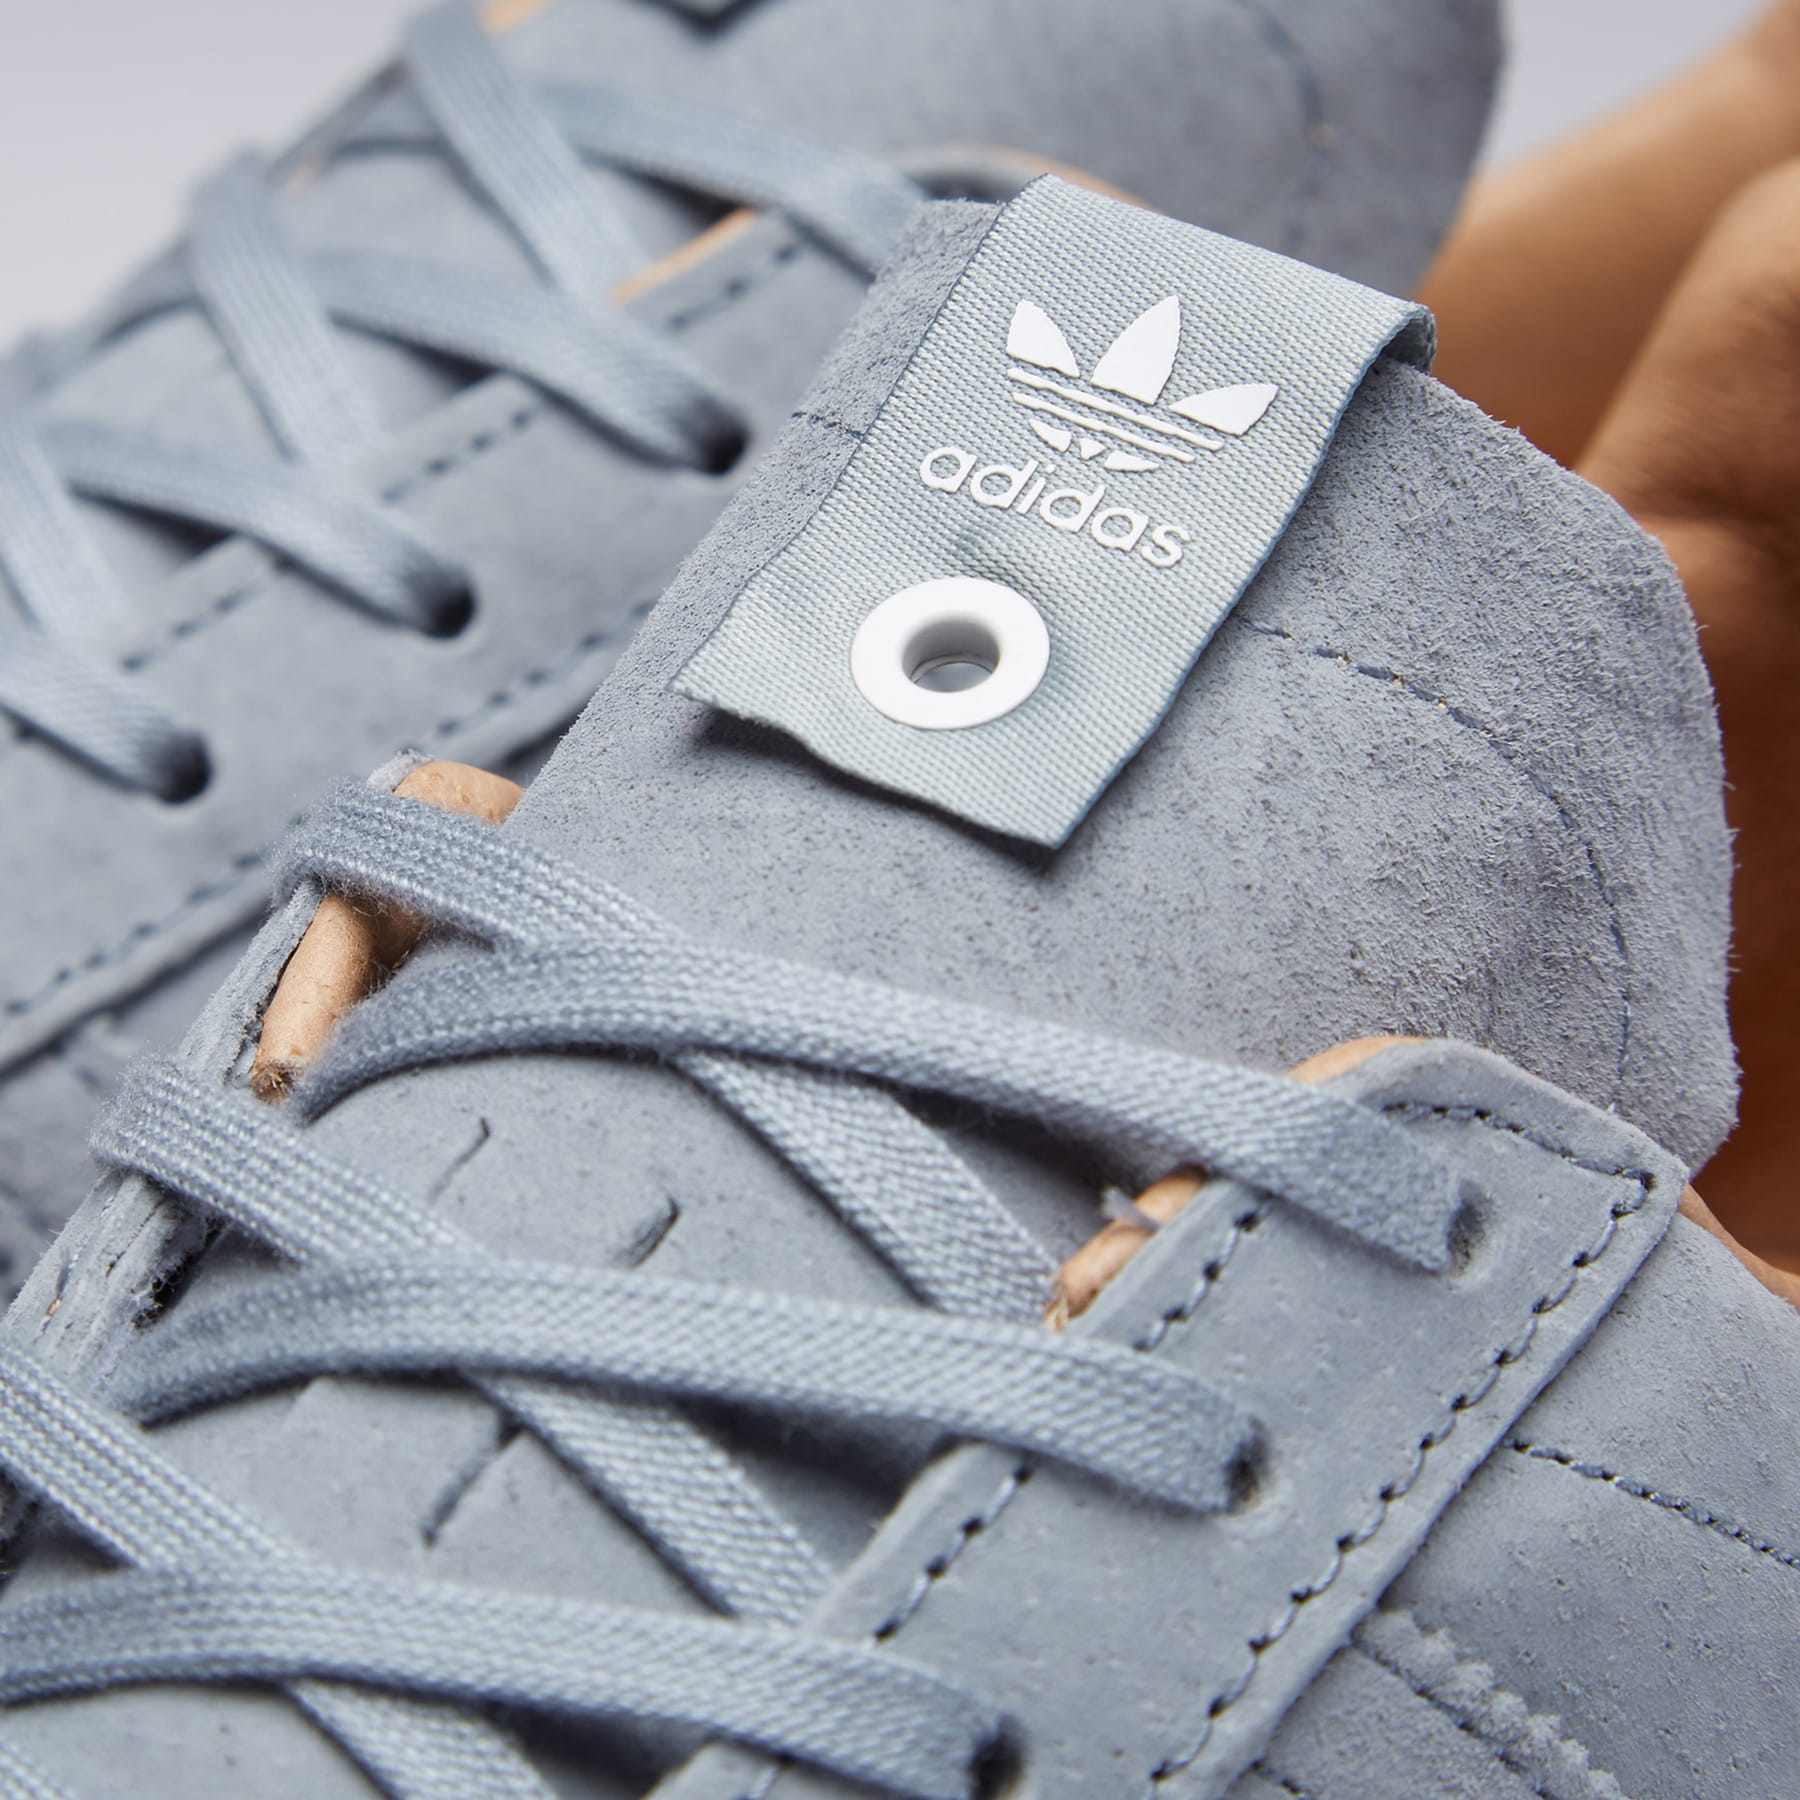 Details about Adidas Consortium x HighSnobiety Campus 80s B24113 Grey Suede ultra boost